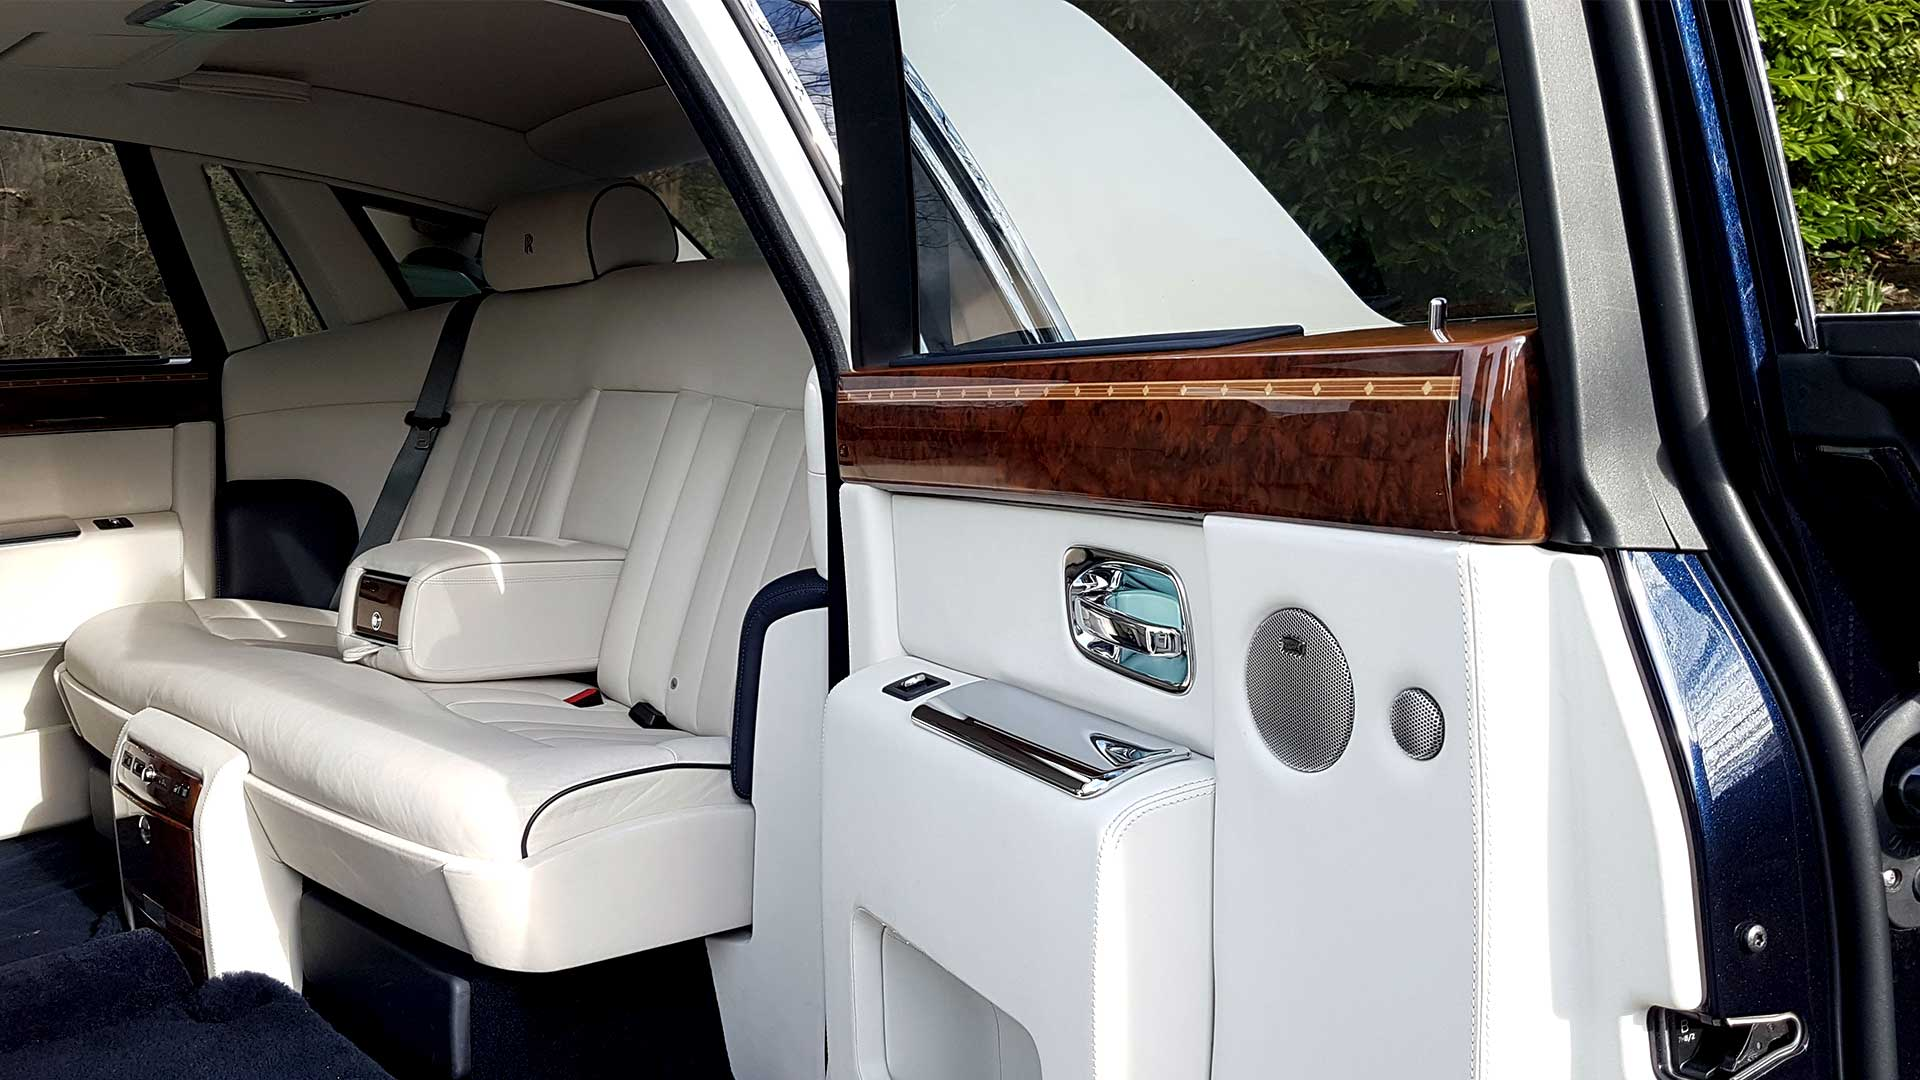 Rolls-Royce Phantom Rear Opening Door with Walnut Marquetry